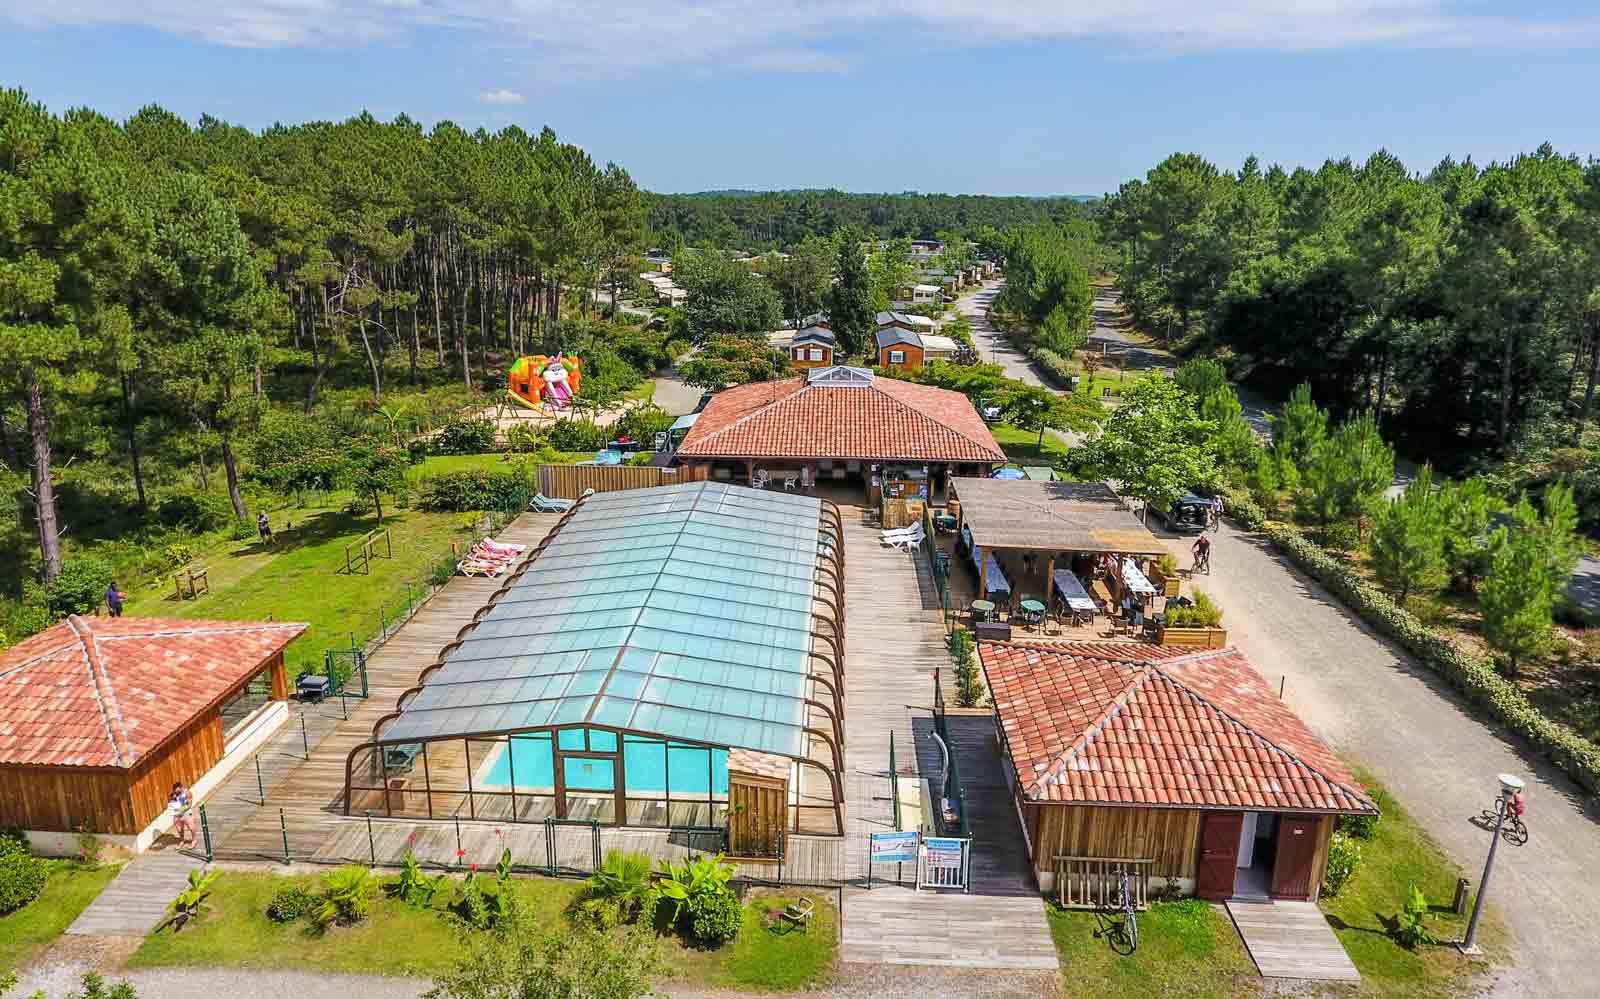 Camping landes oc anes 4 toiles location mobil home for Camping pays basque bord de mer avec piscine